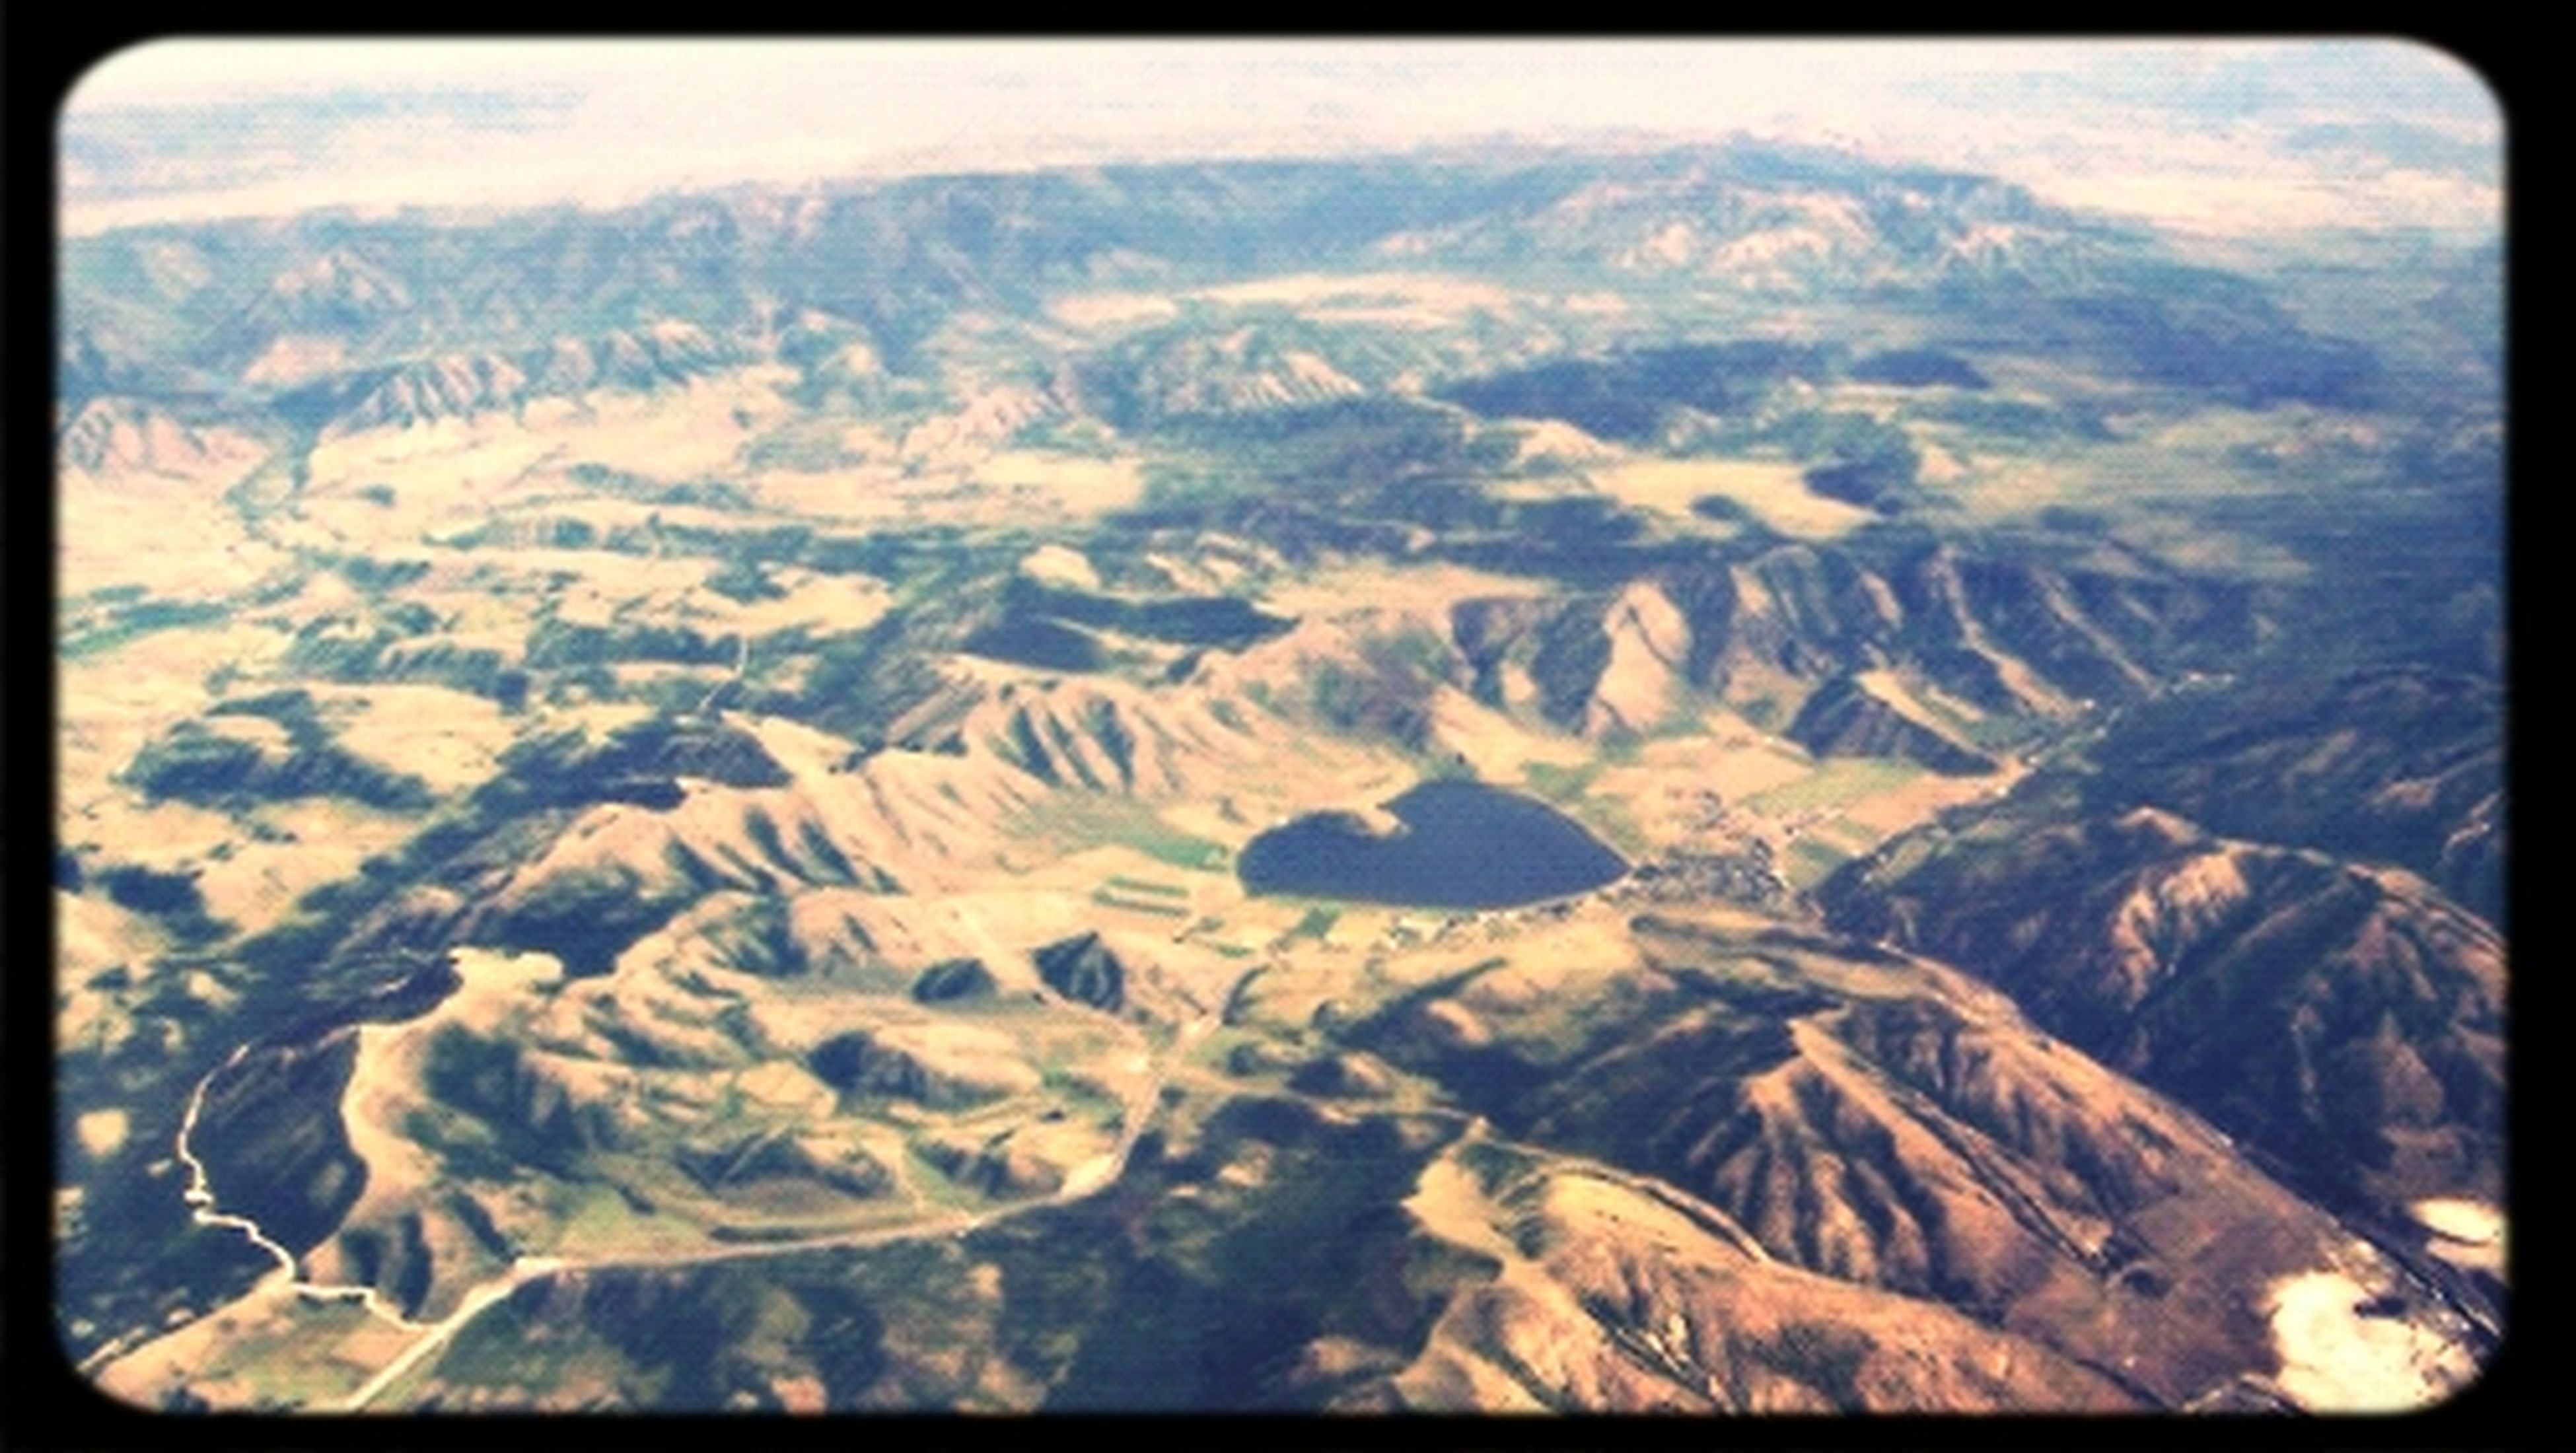 Landscape Travel From An Airplane Window